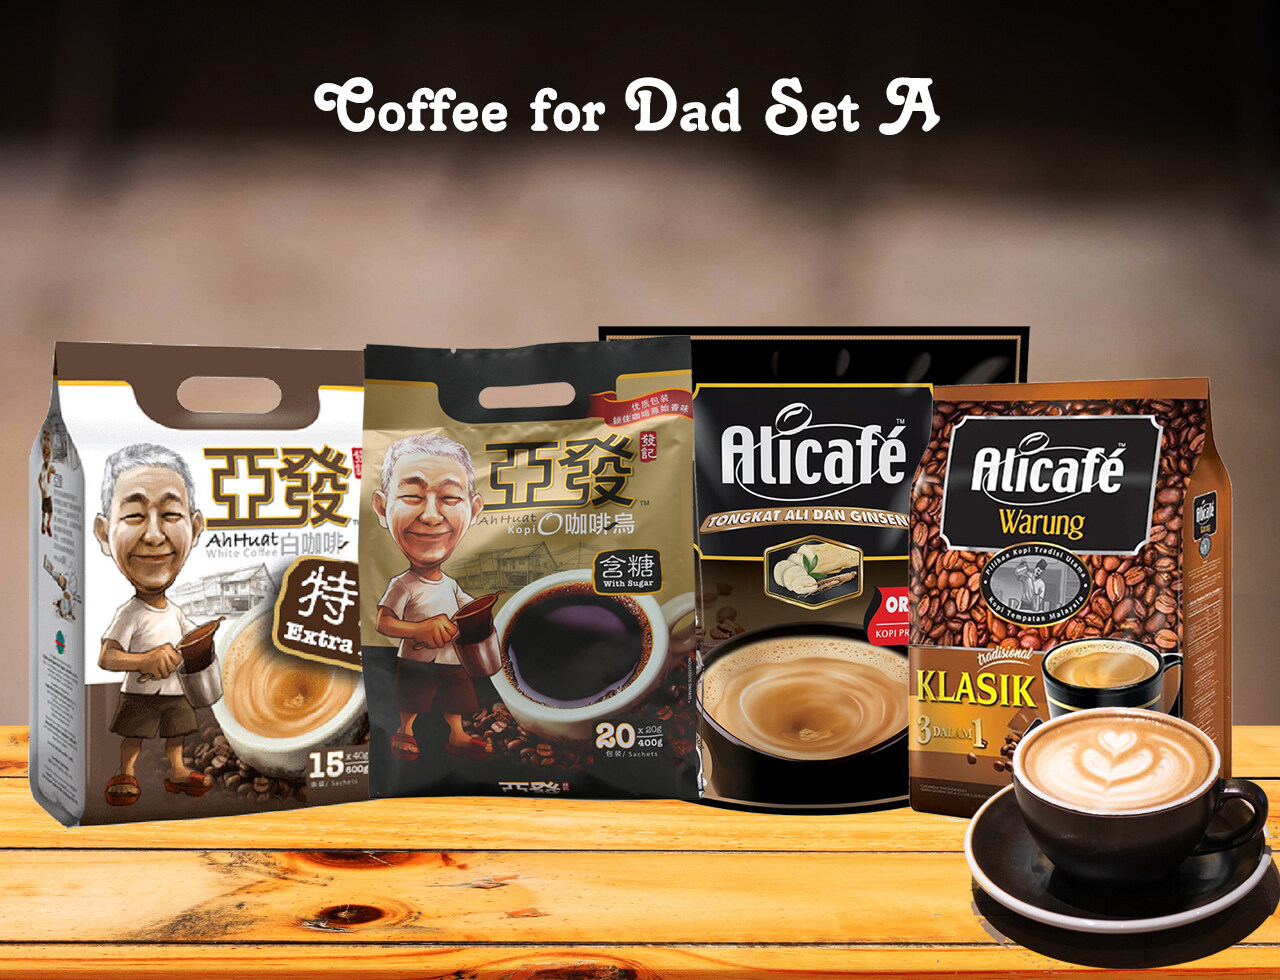 Coffee for Dad (Alicafe Tongkat Ali dan Ginseng Original Premixed Coffee / Alicafe Warung / Ah Huat Kopi O / Ah Huat White Coffee Gold Medal / Ah Huat White Coffee Extra Rich / Ah Huat White Coffee Smooth )